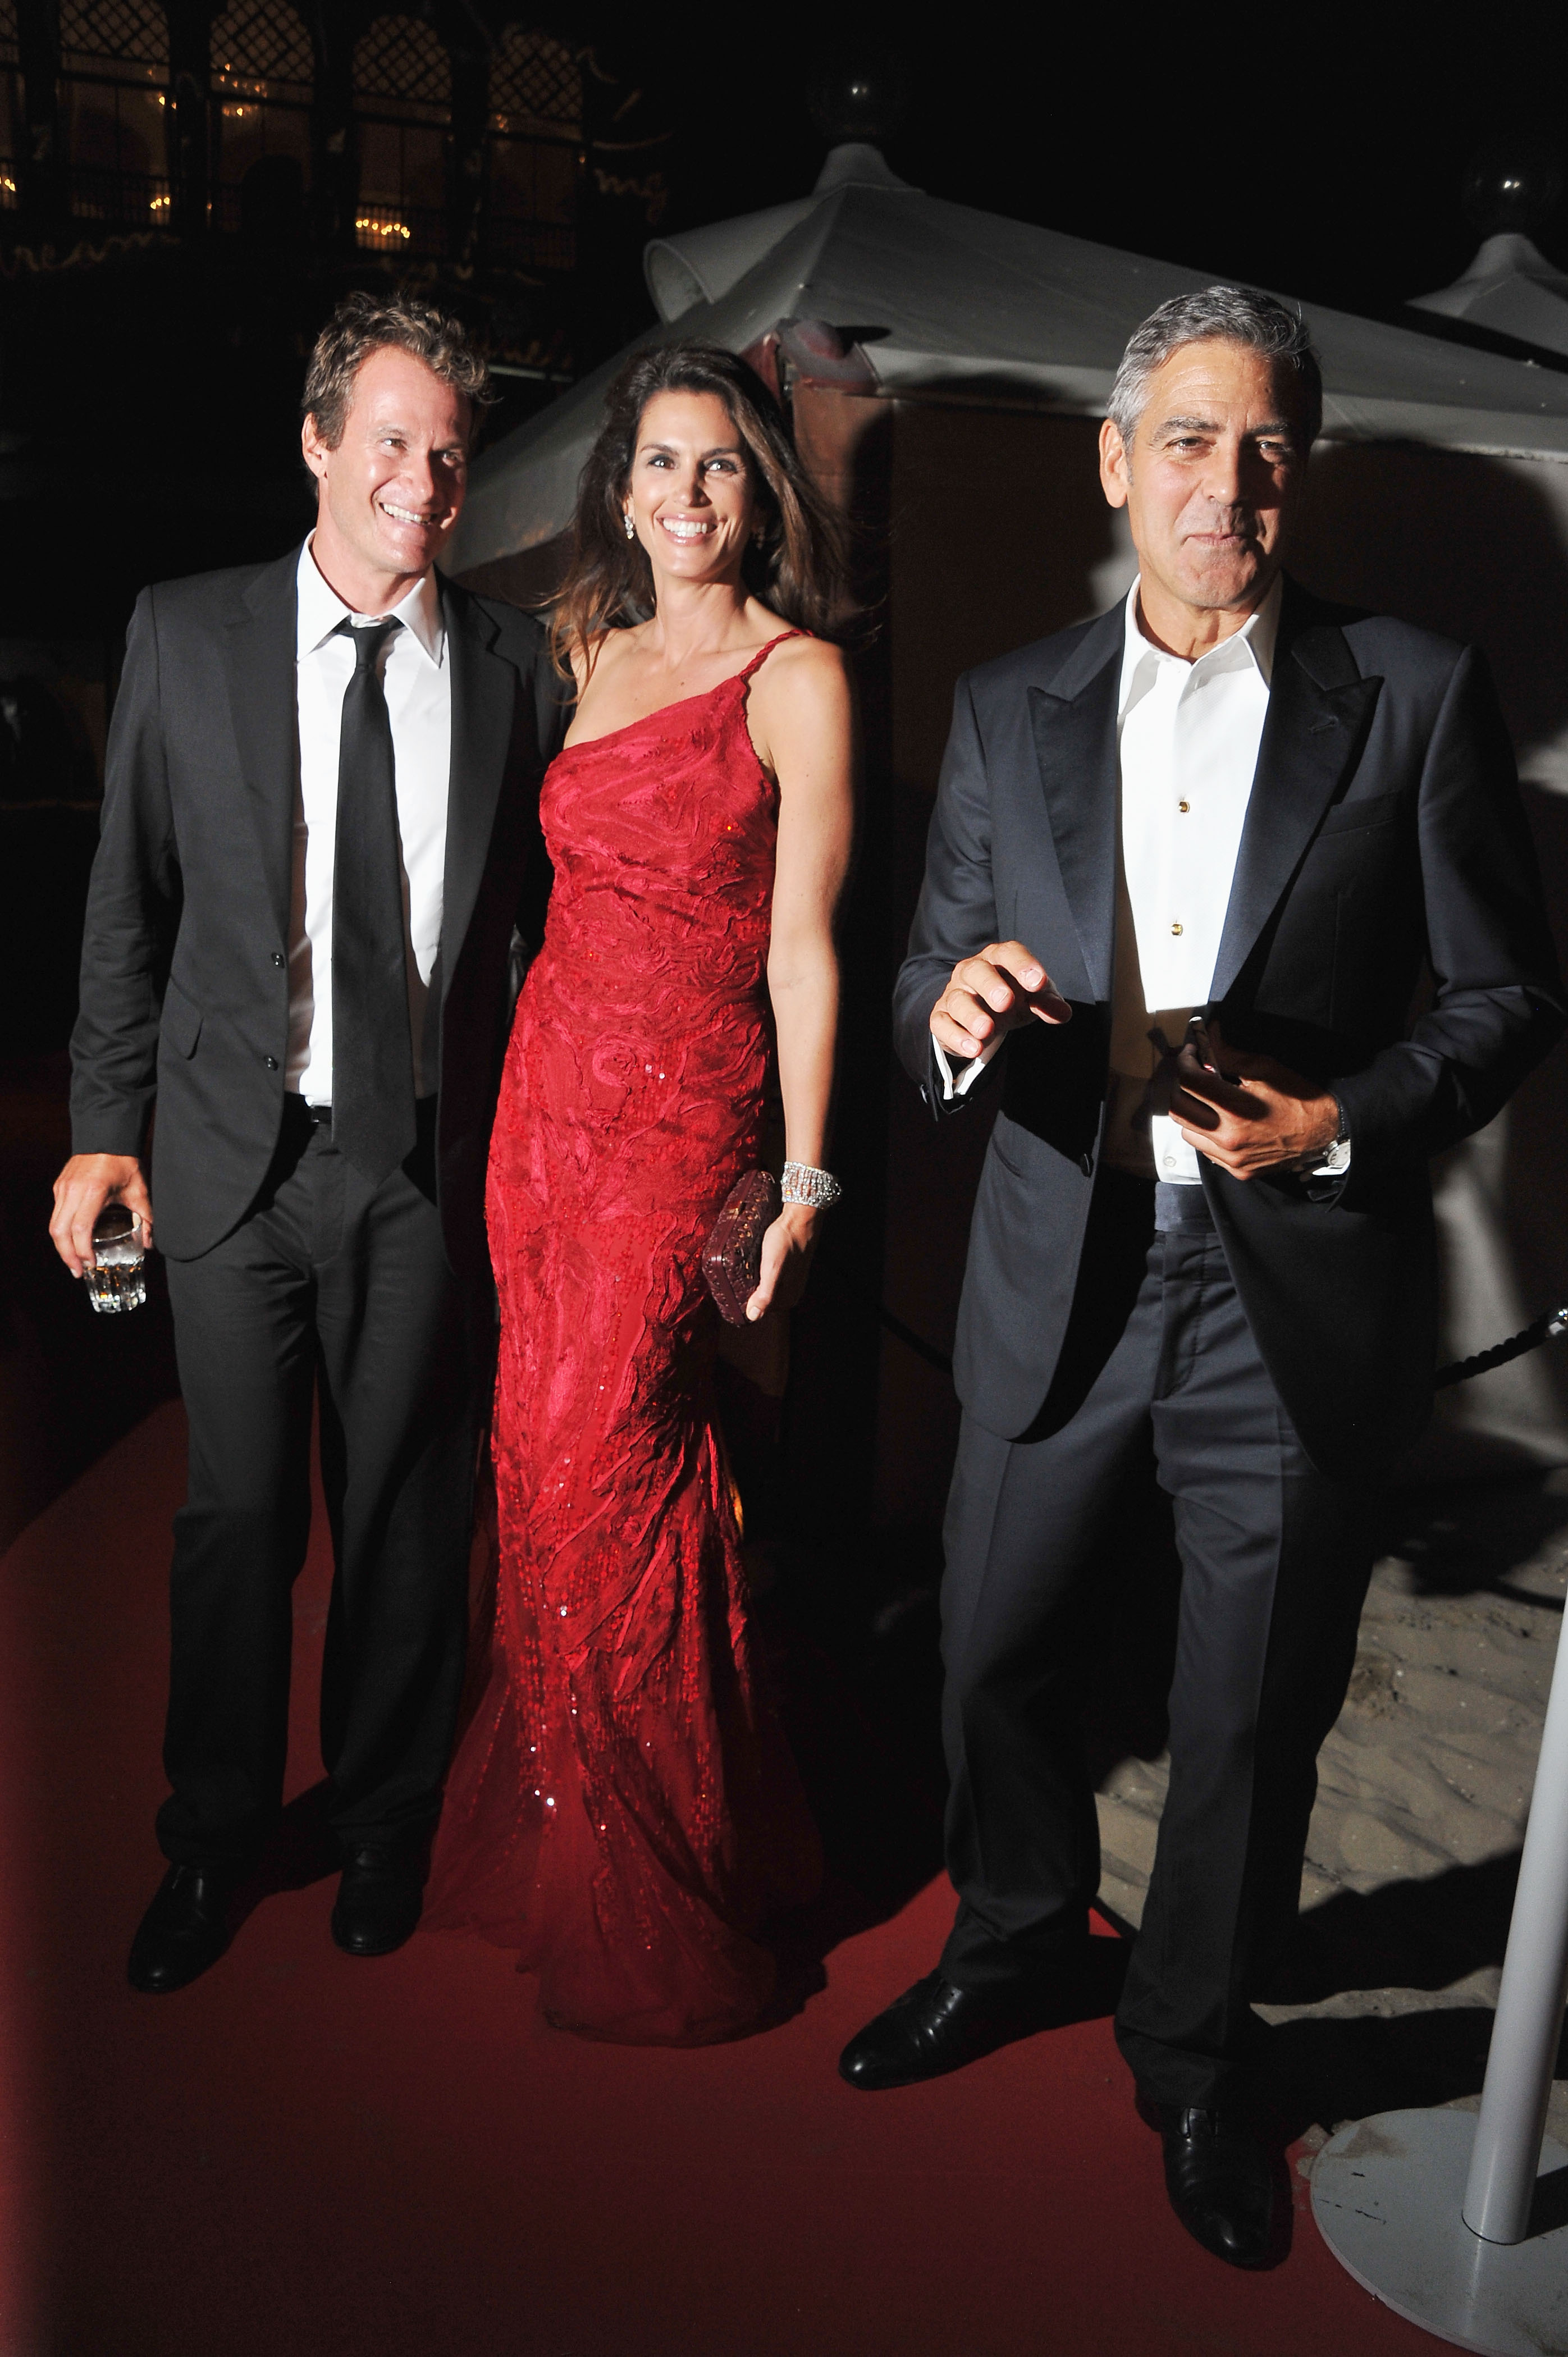 George Clooney with Rande Gerber and Cindy Crawford at the Venice Film Festival opening dinner.